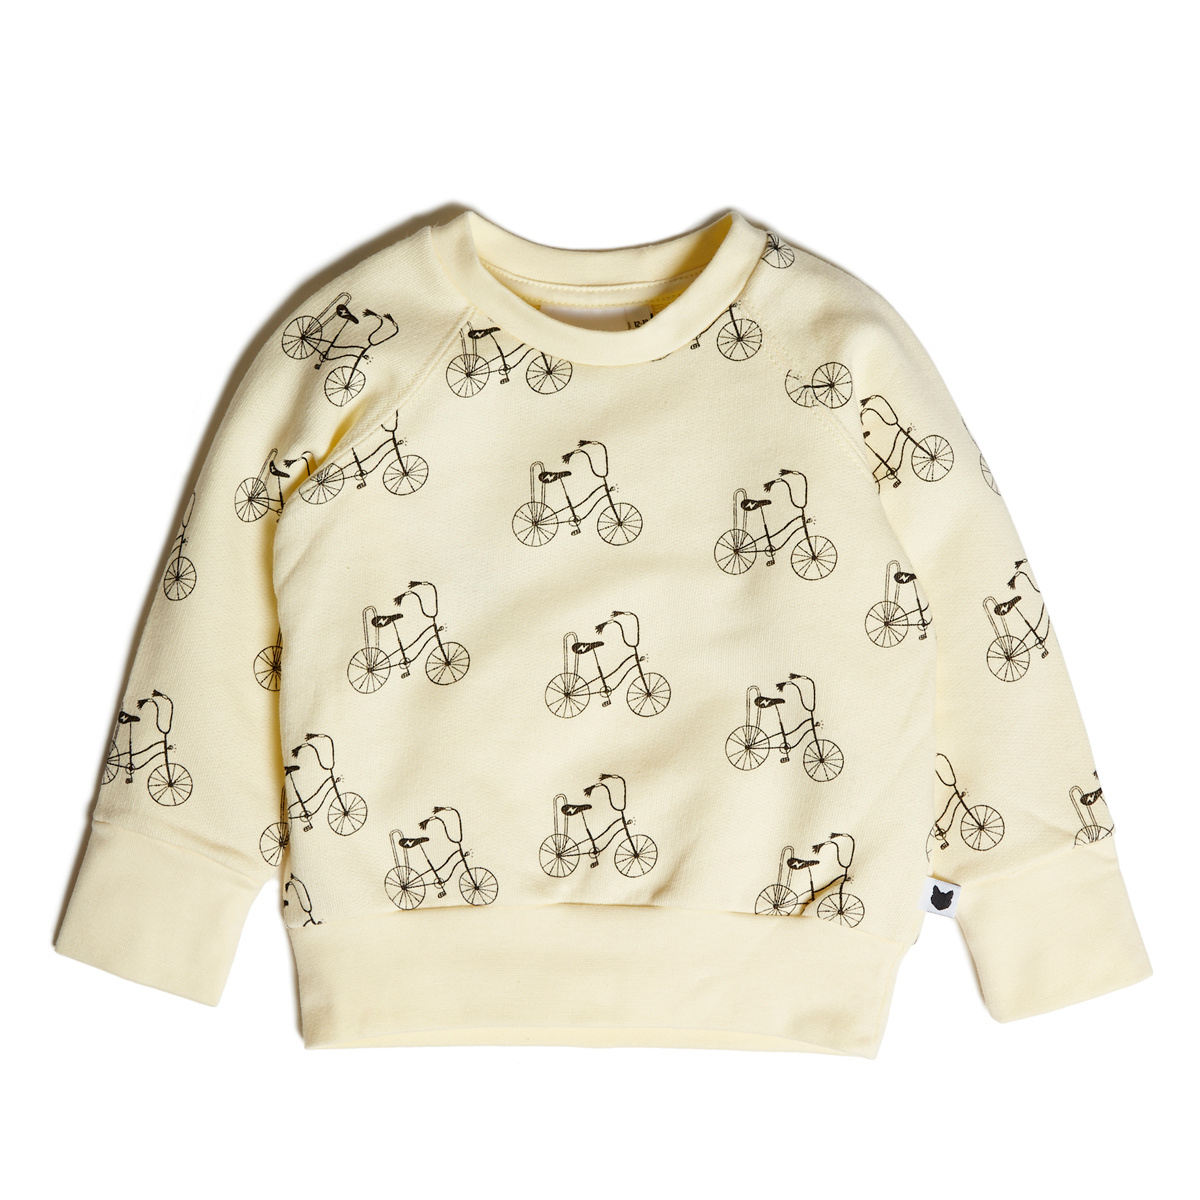 Hauts bébé Sweatshirt Banana Bike Loopback - 6/12 Mois Sweatshirt Banana Bike Loopback - 6/12 Mois